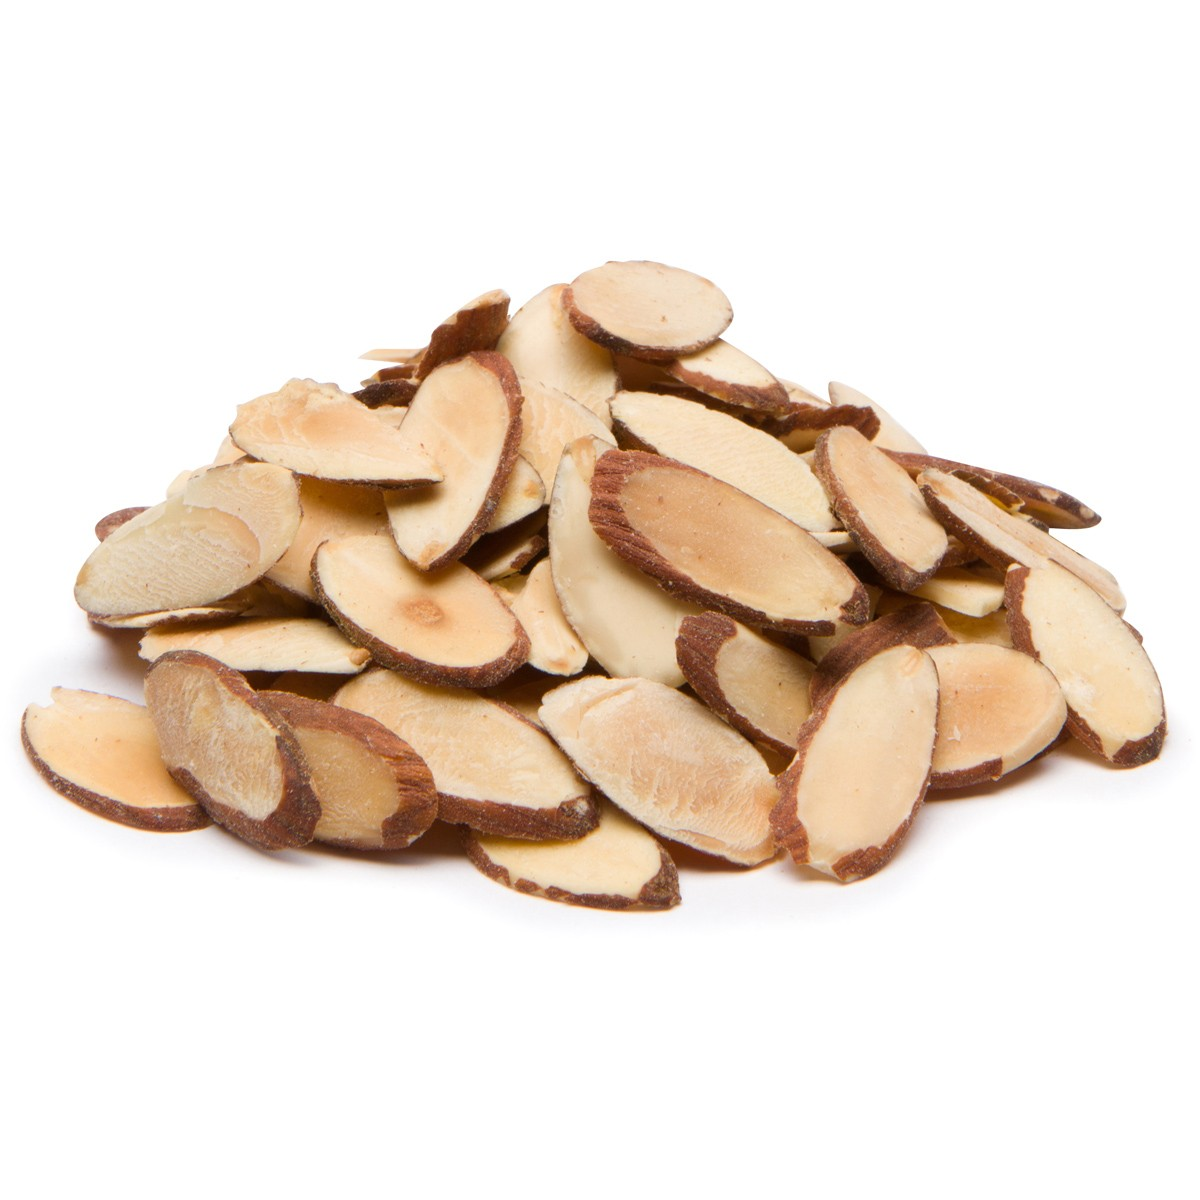 Dry Roasted Natural Thick Slice Almonds